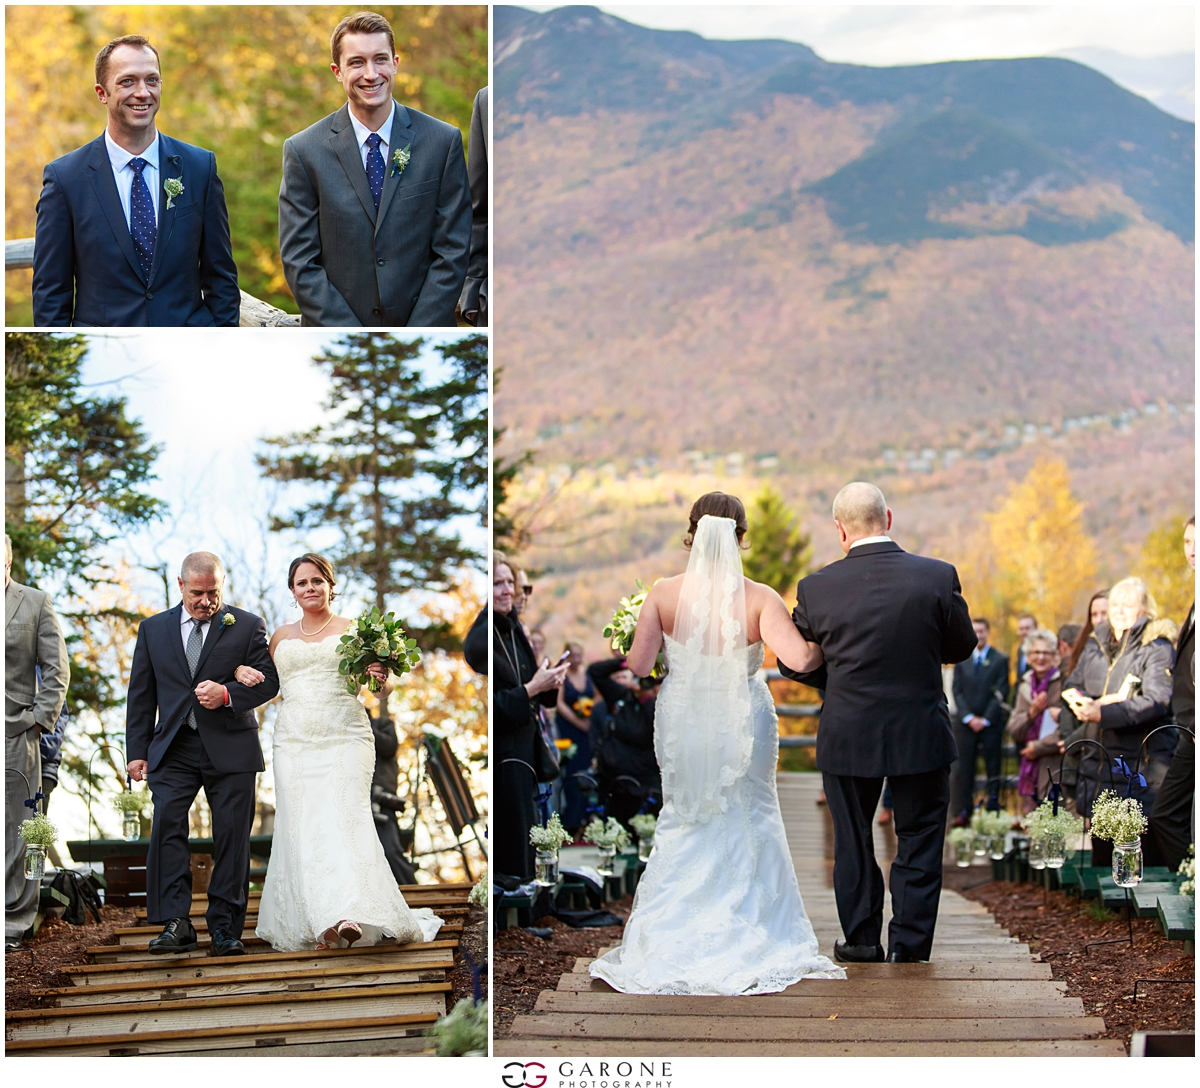 Garone_Photography_Loon_Mountain_Wedding_NH_White_Mountain_Wedding_Photography_0019.jpg